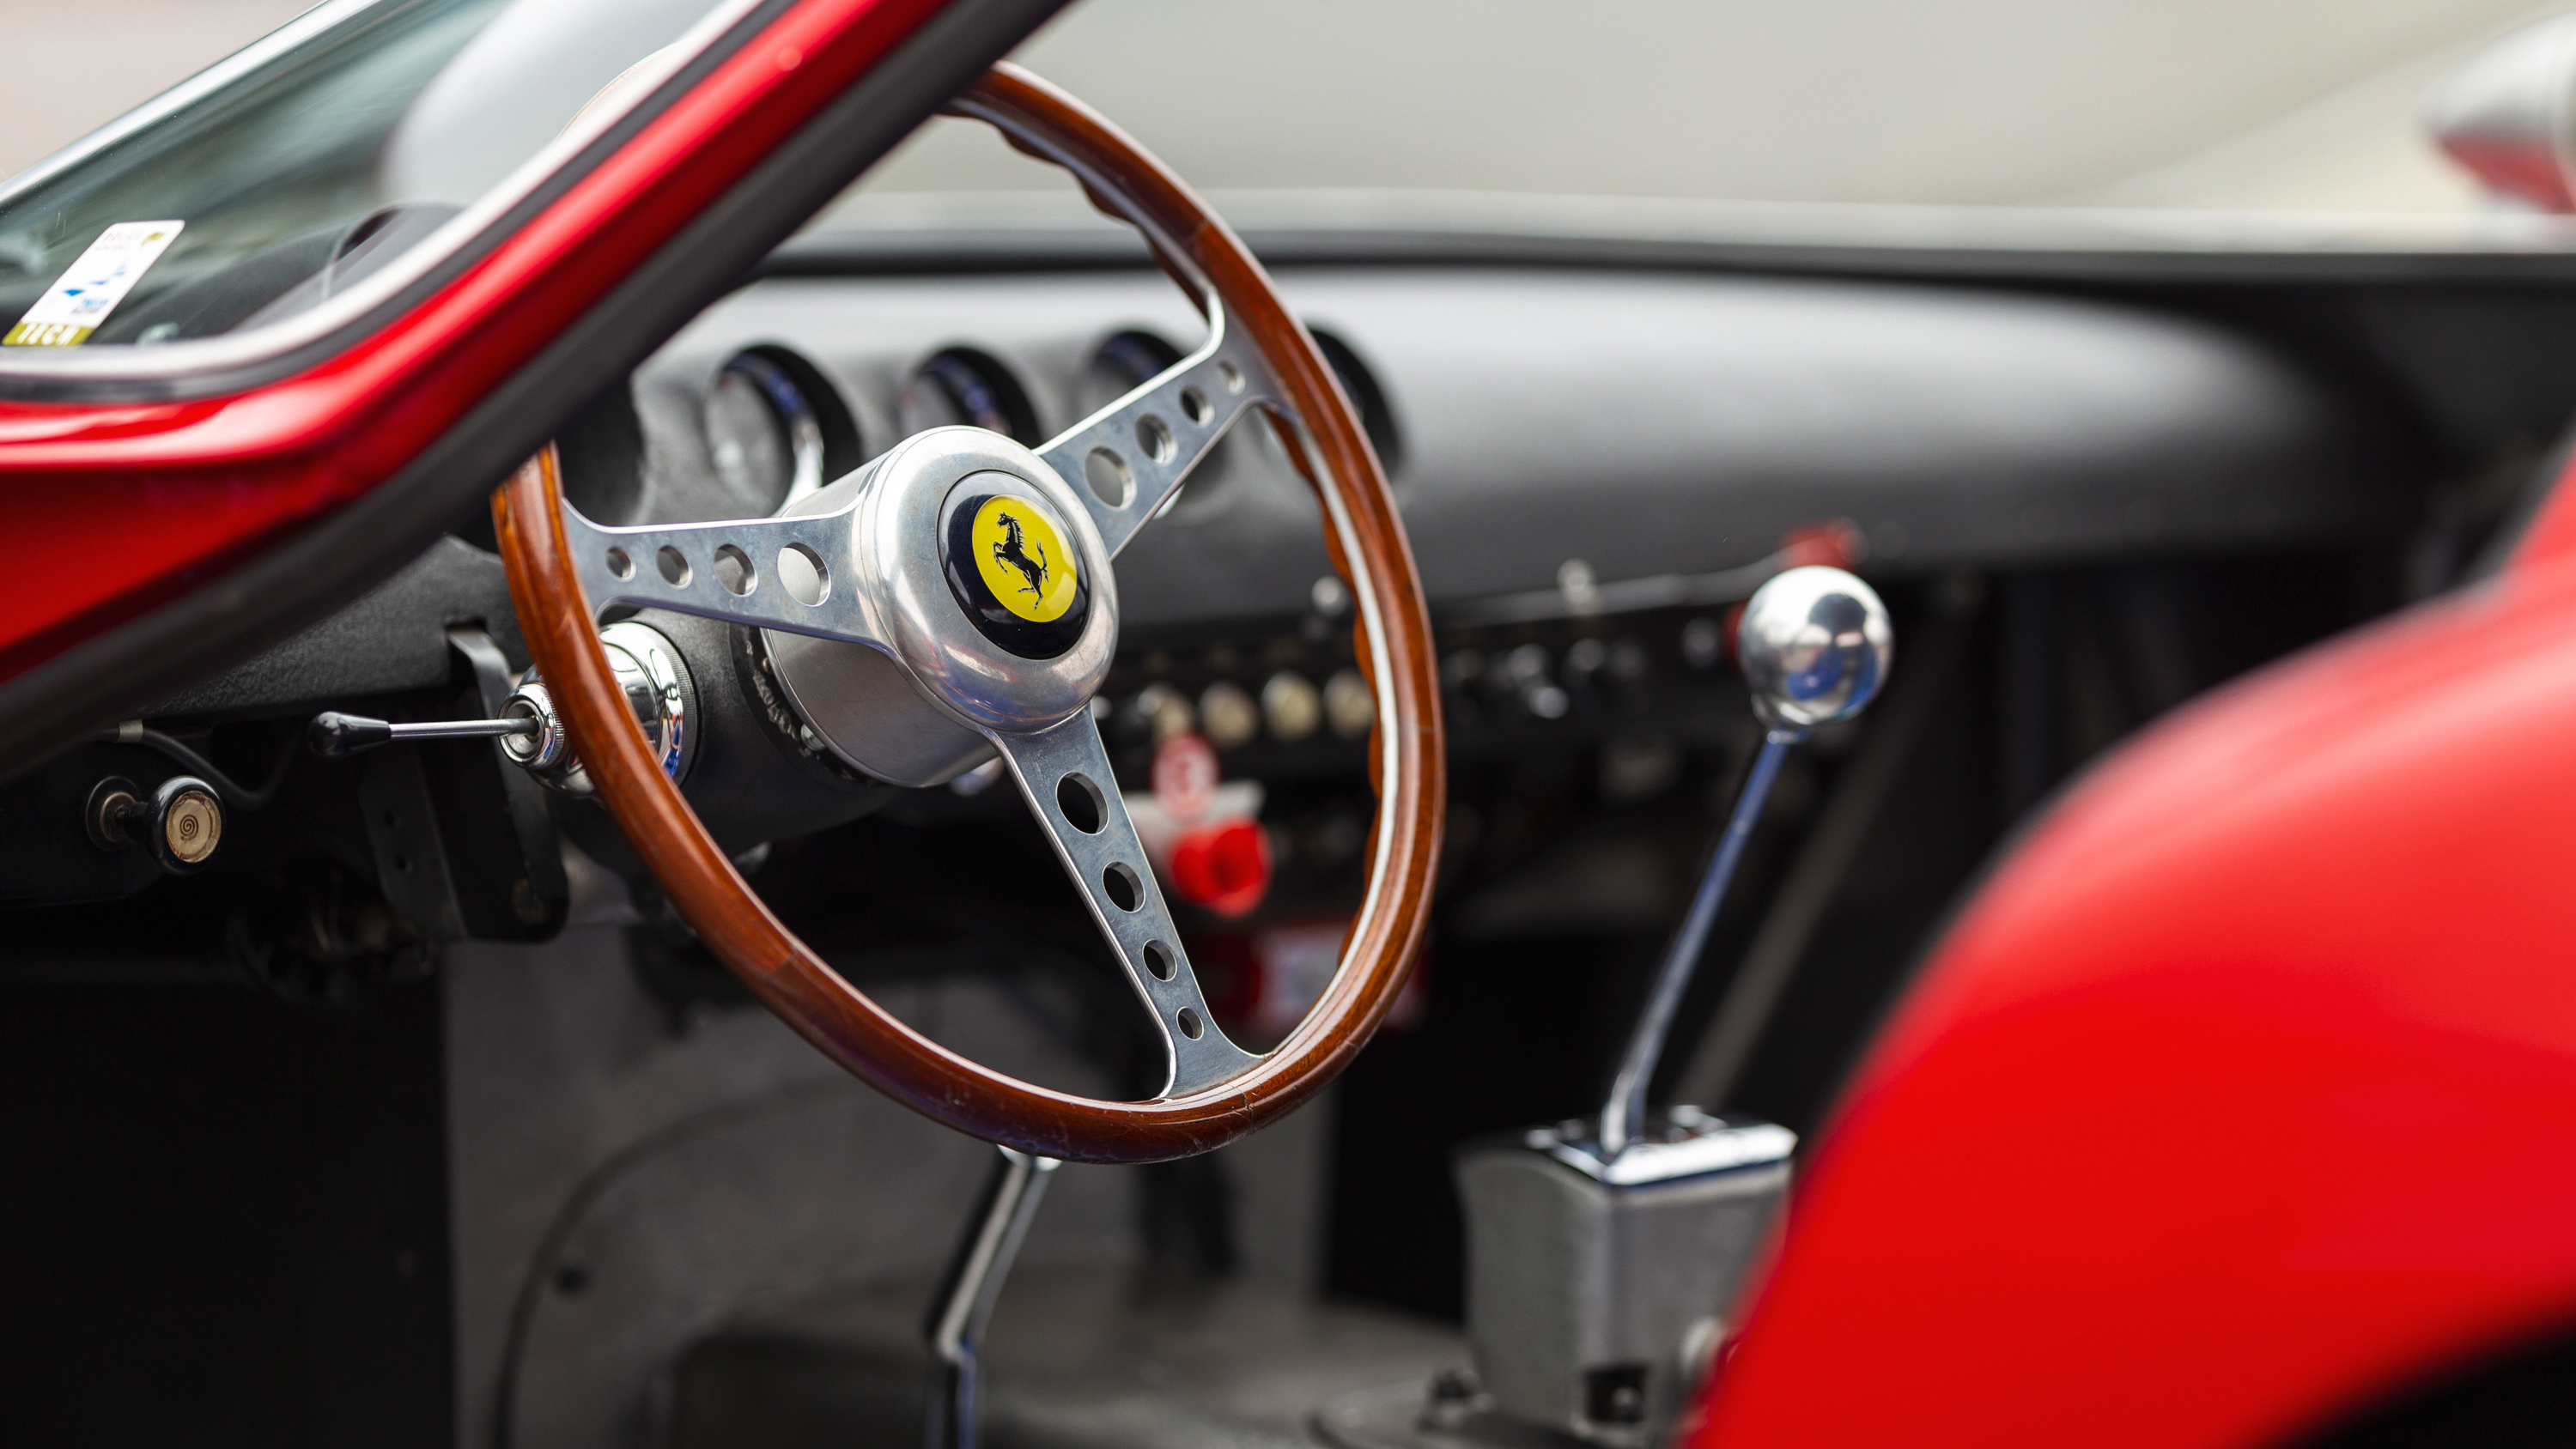 Vintage Ferrari could fetch $45M at auction